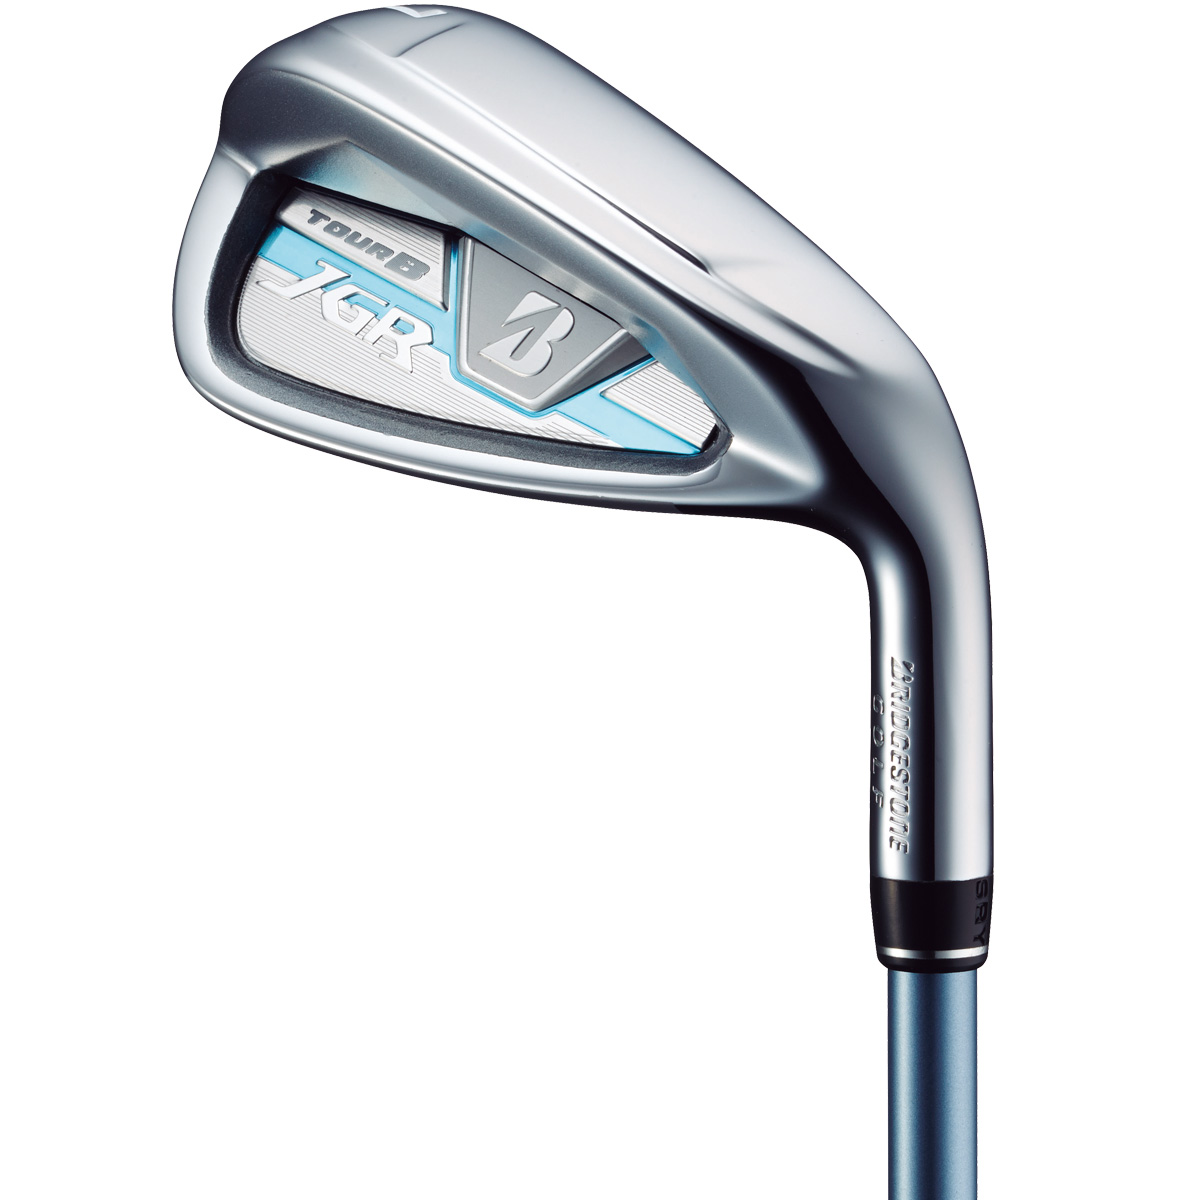 TOUR B JGR アイアン(5本セット) Air Speeder L for Ironレディス